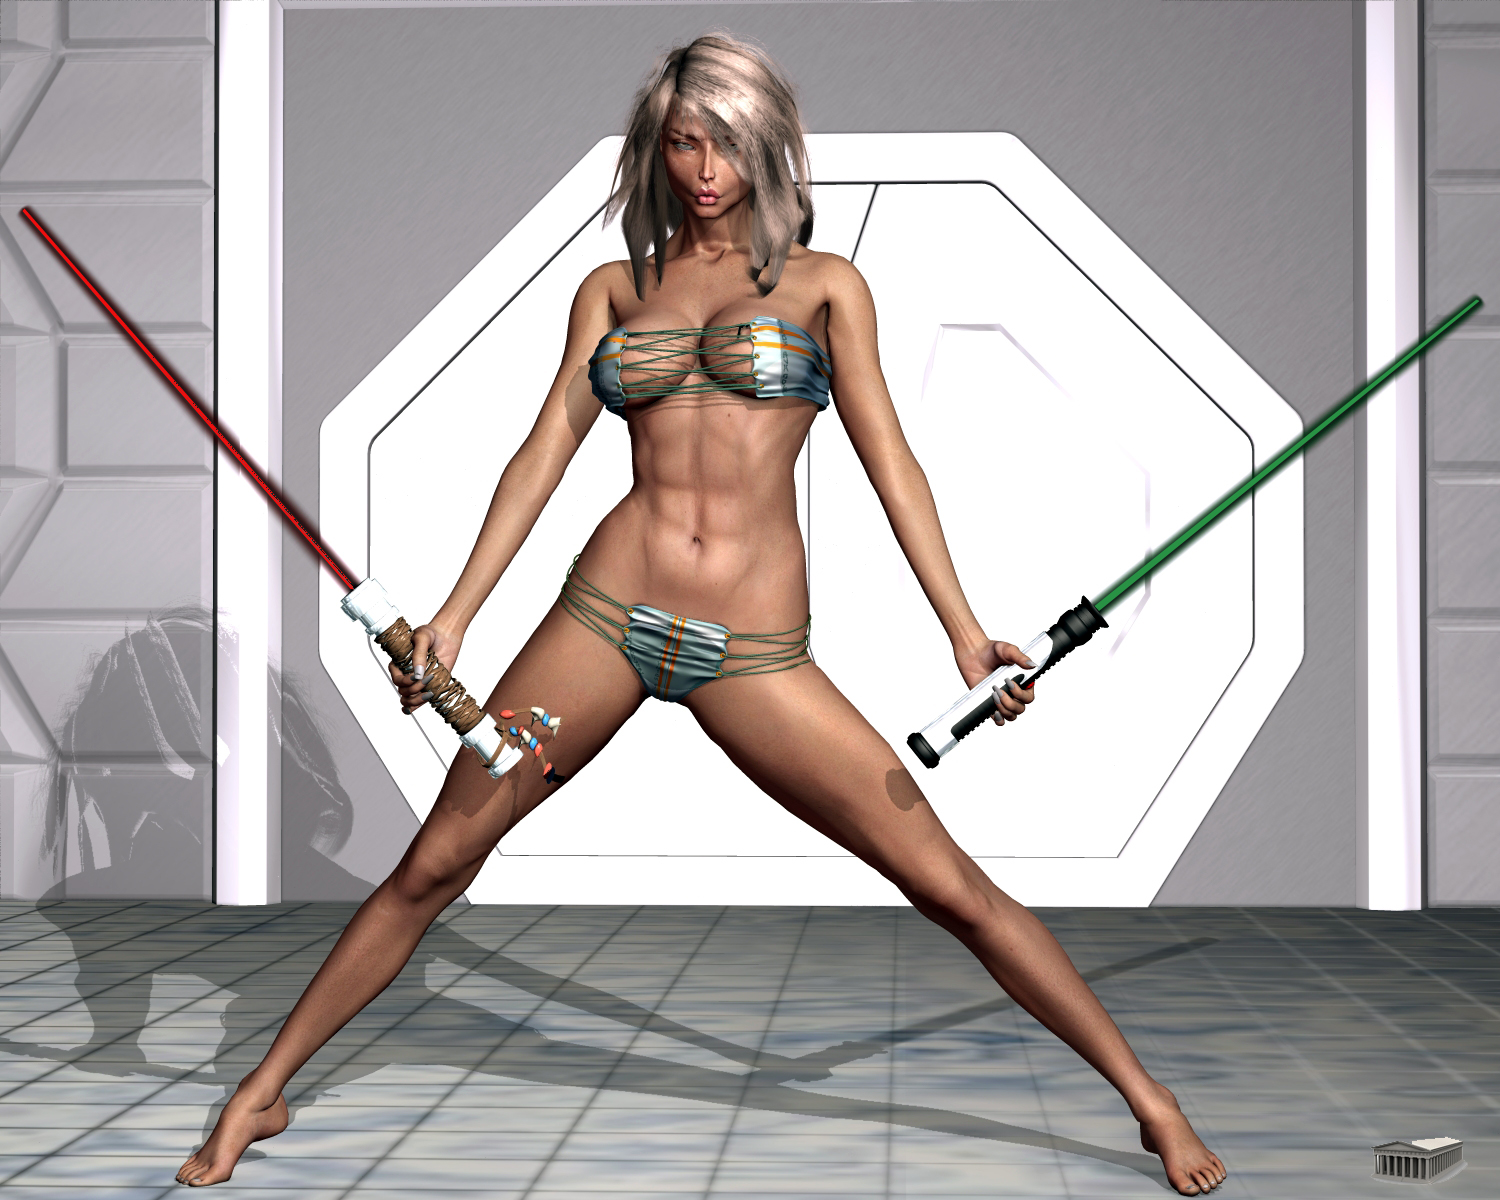 Hot female star wars cartoon images exploited download